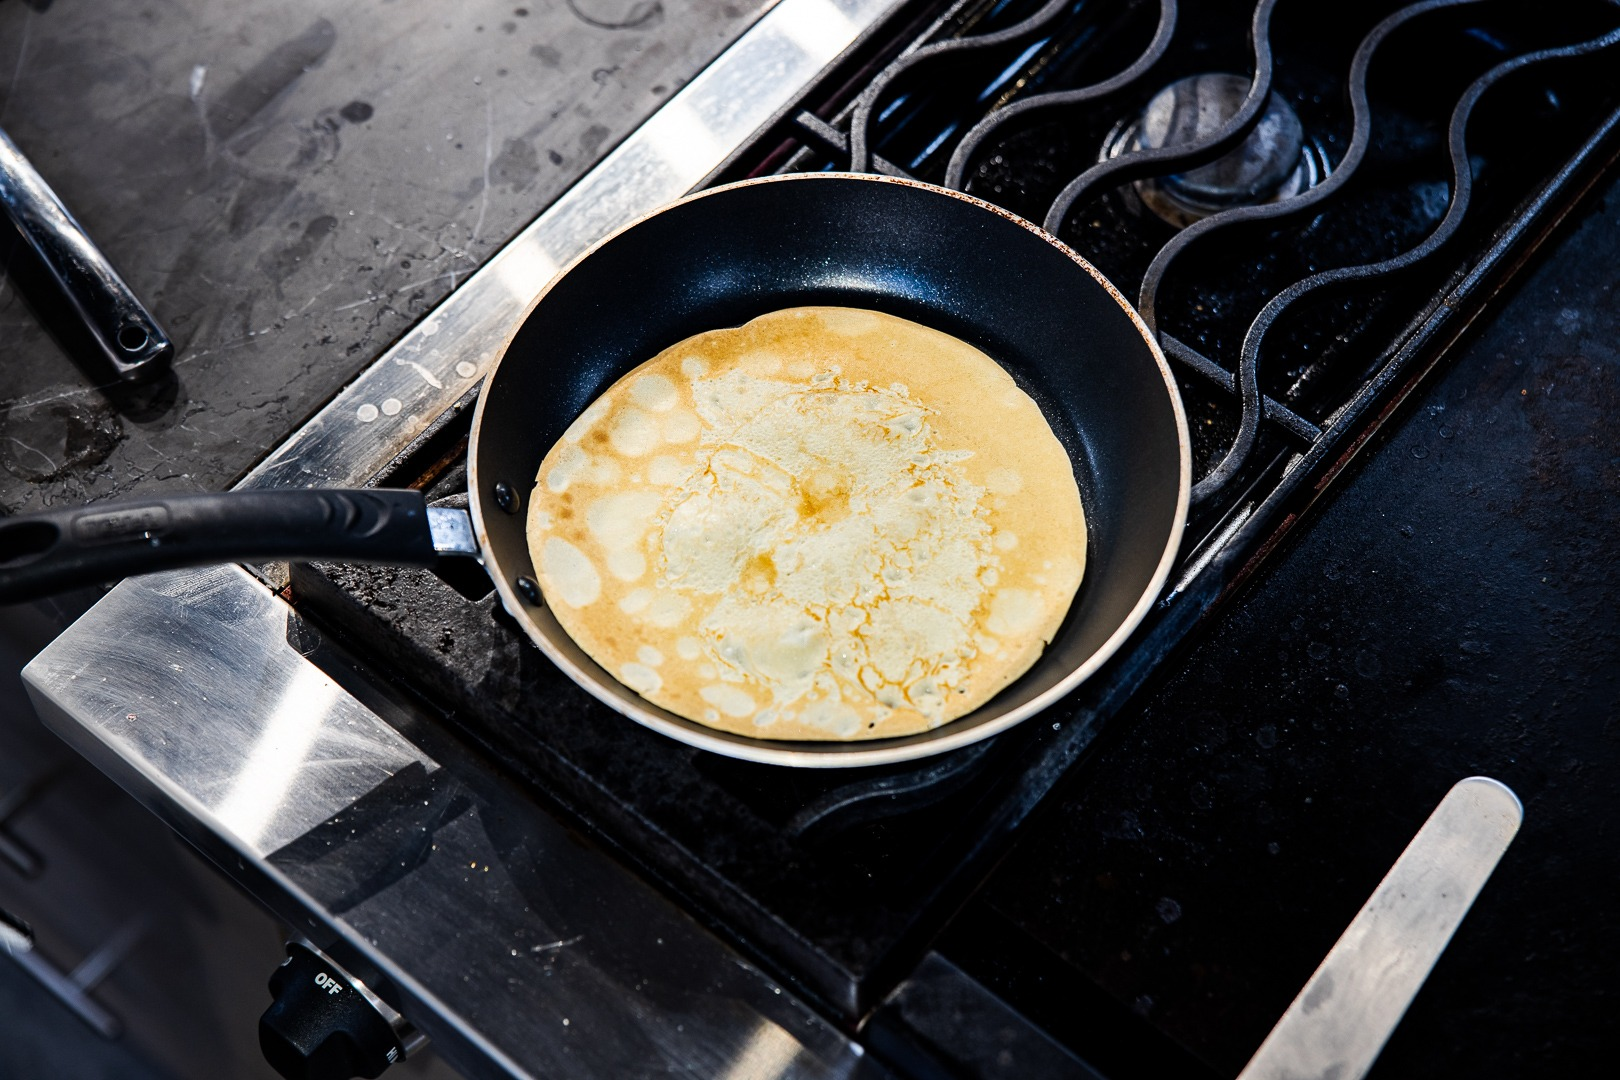 A crepe cooking on its second side